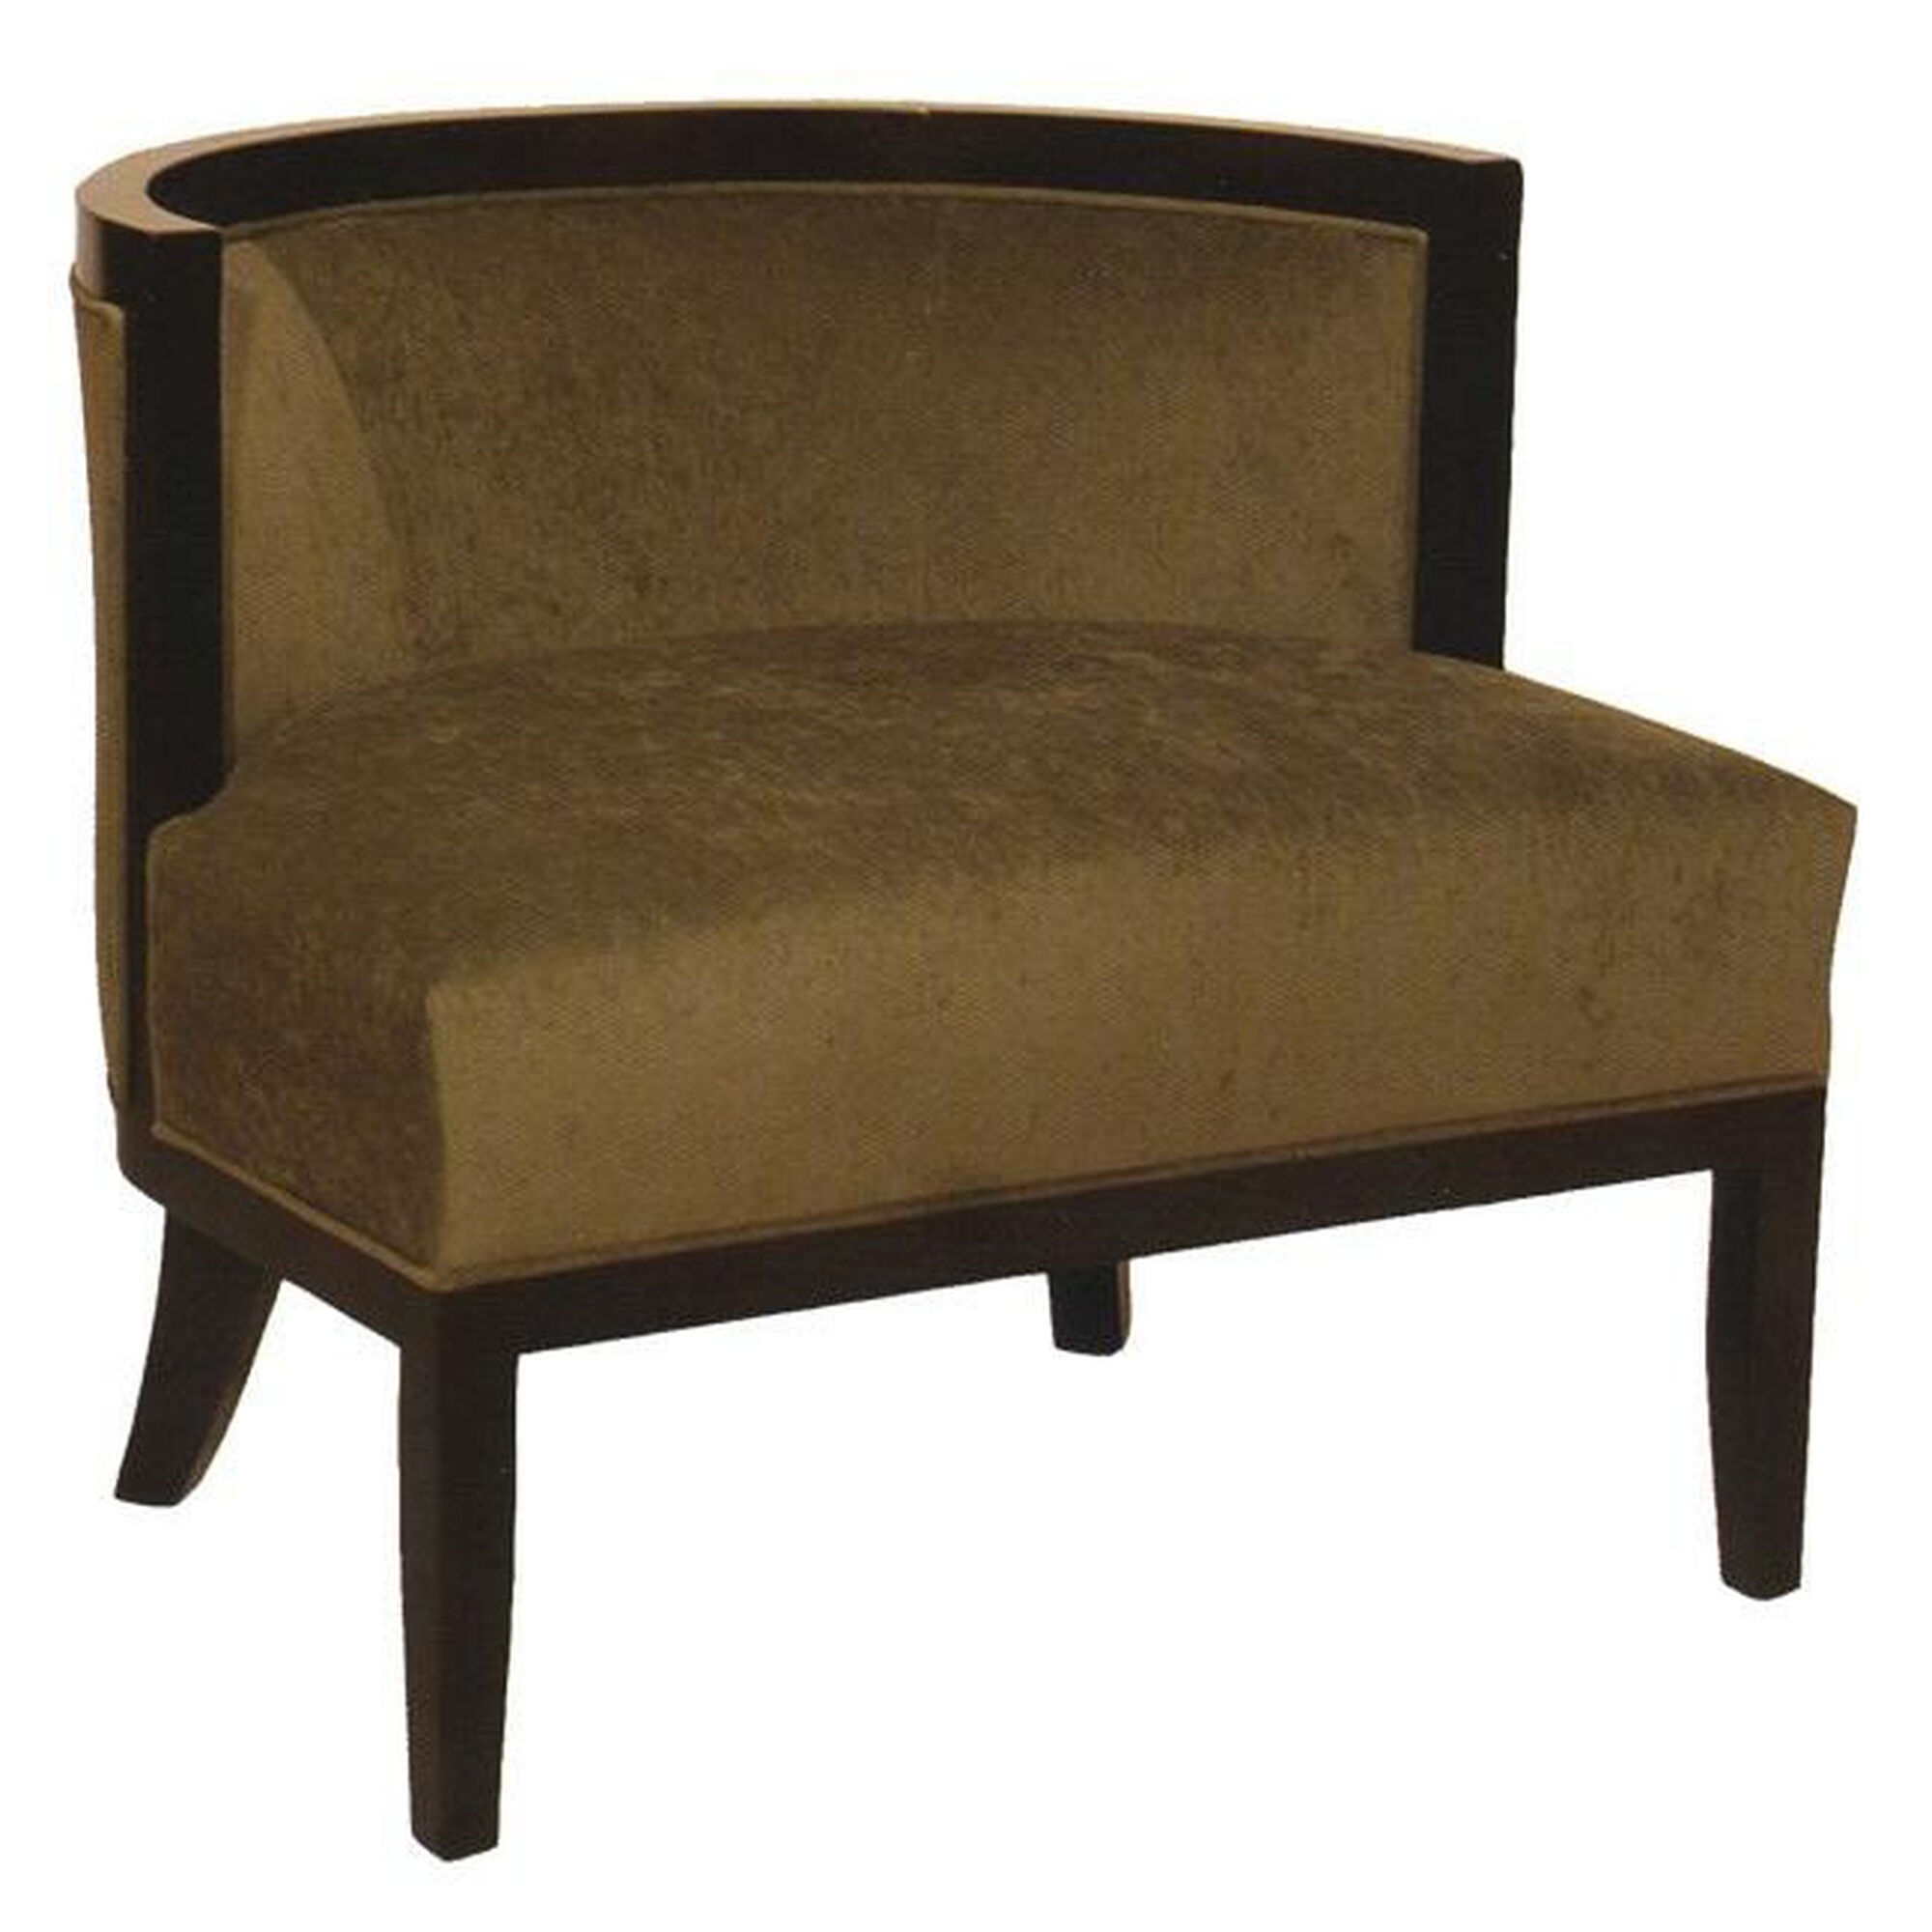 Ac furniture 2738 upholstered lounge chair w tapered wood for Furniture sites